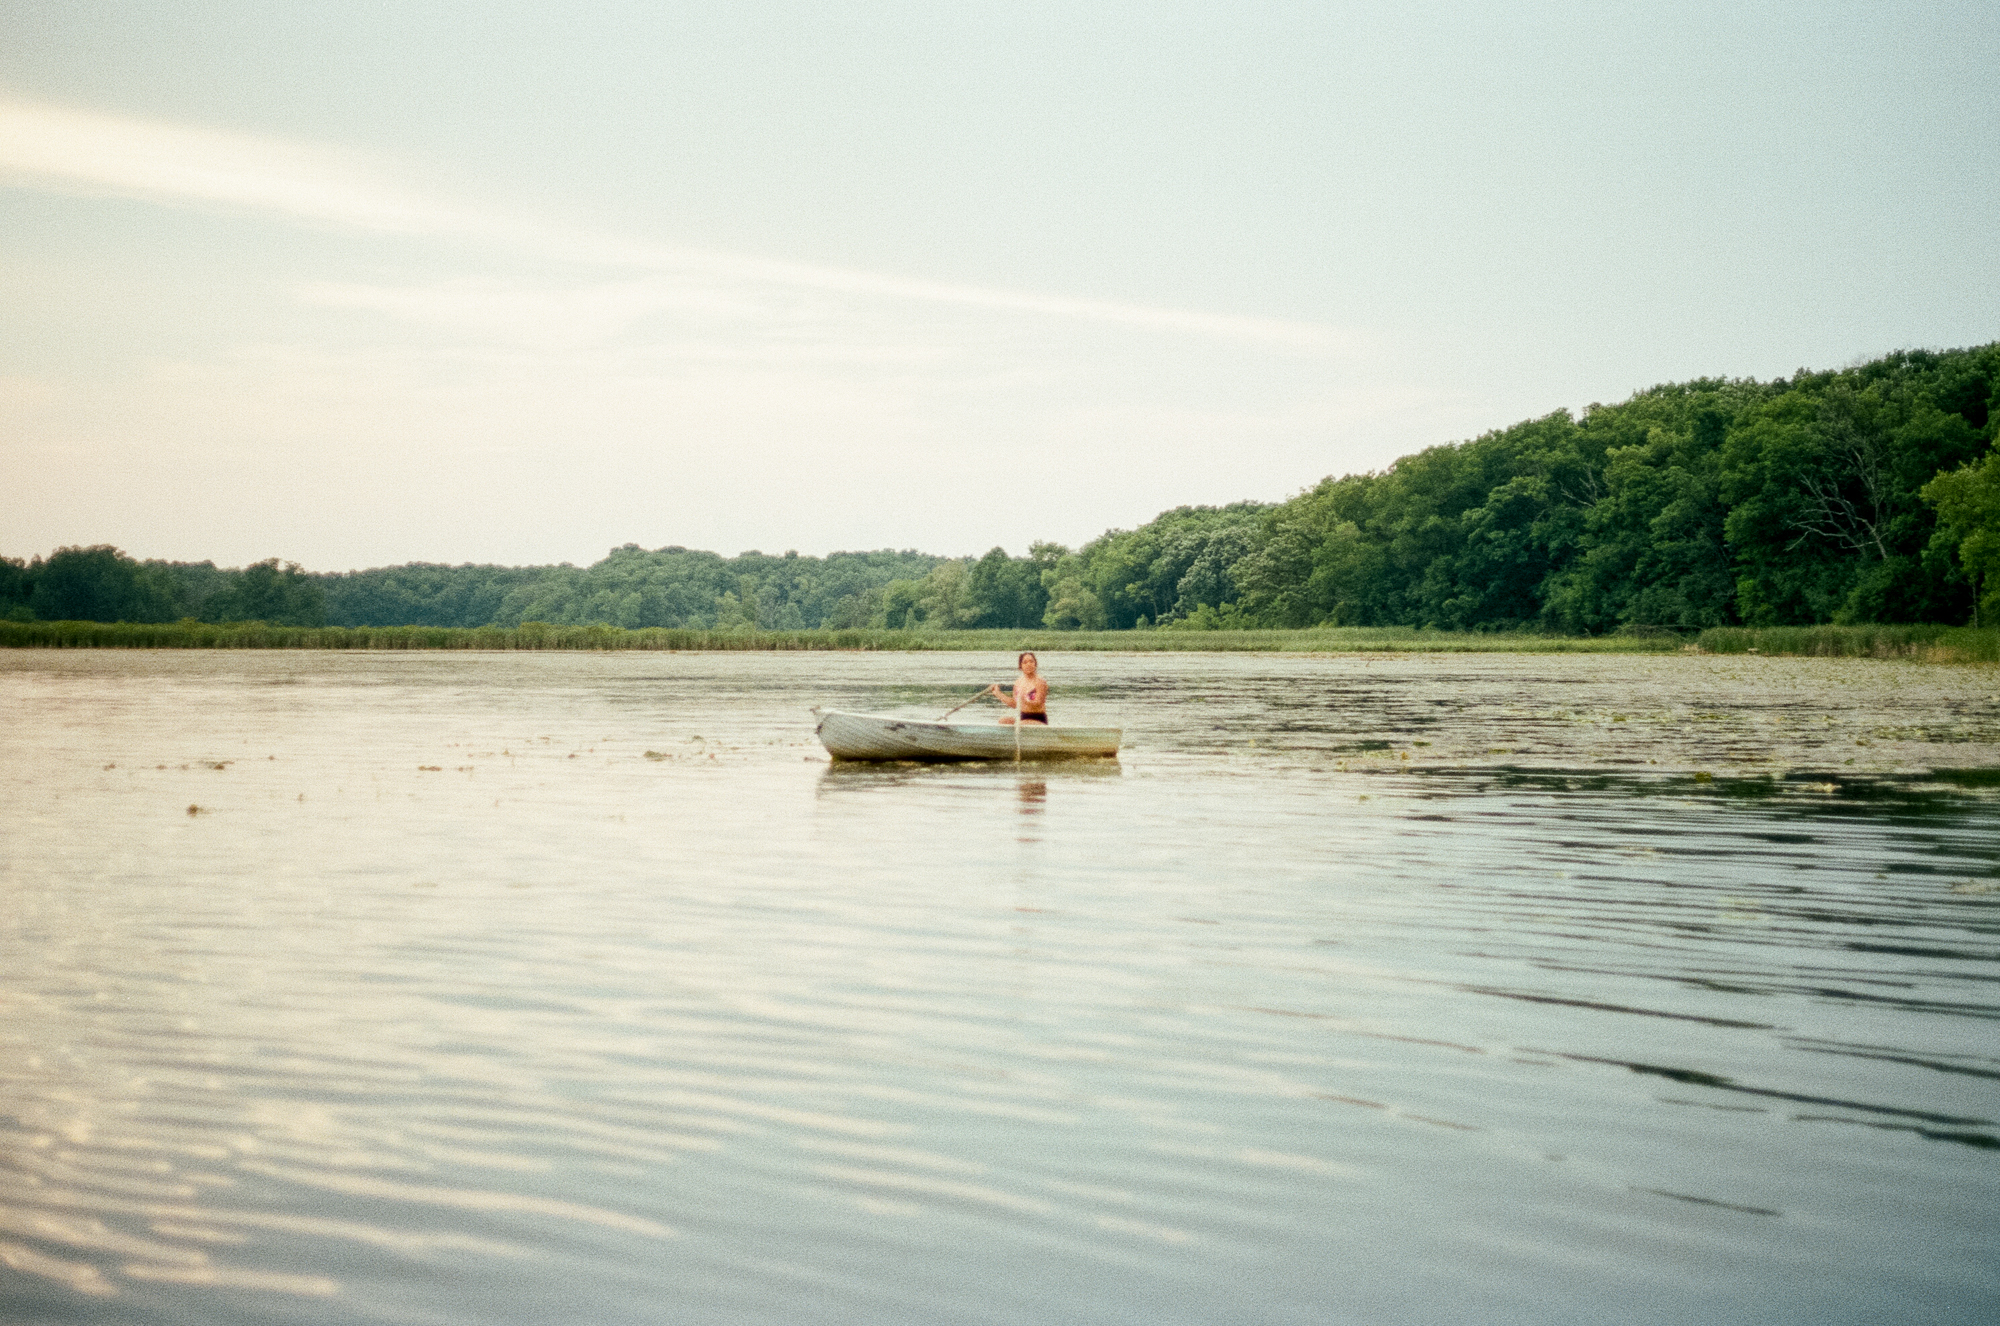 A photo of a woman kayaking at  Camp Wandawega  in Elkhorn, Wisconsin during Let's Camp 2018 photographed for  Driftless magazine  and hosted by  The Glossary  and  Feminest .